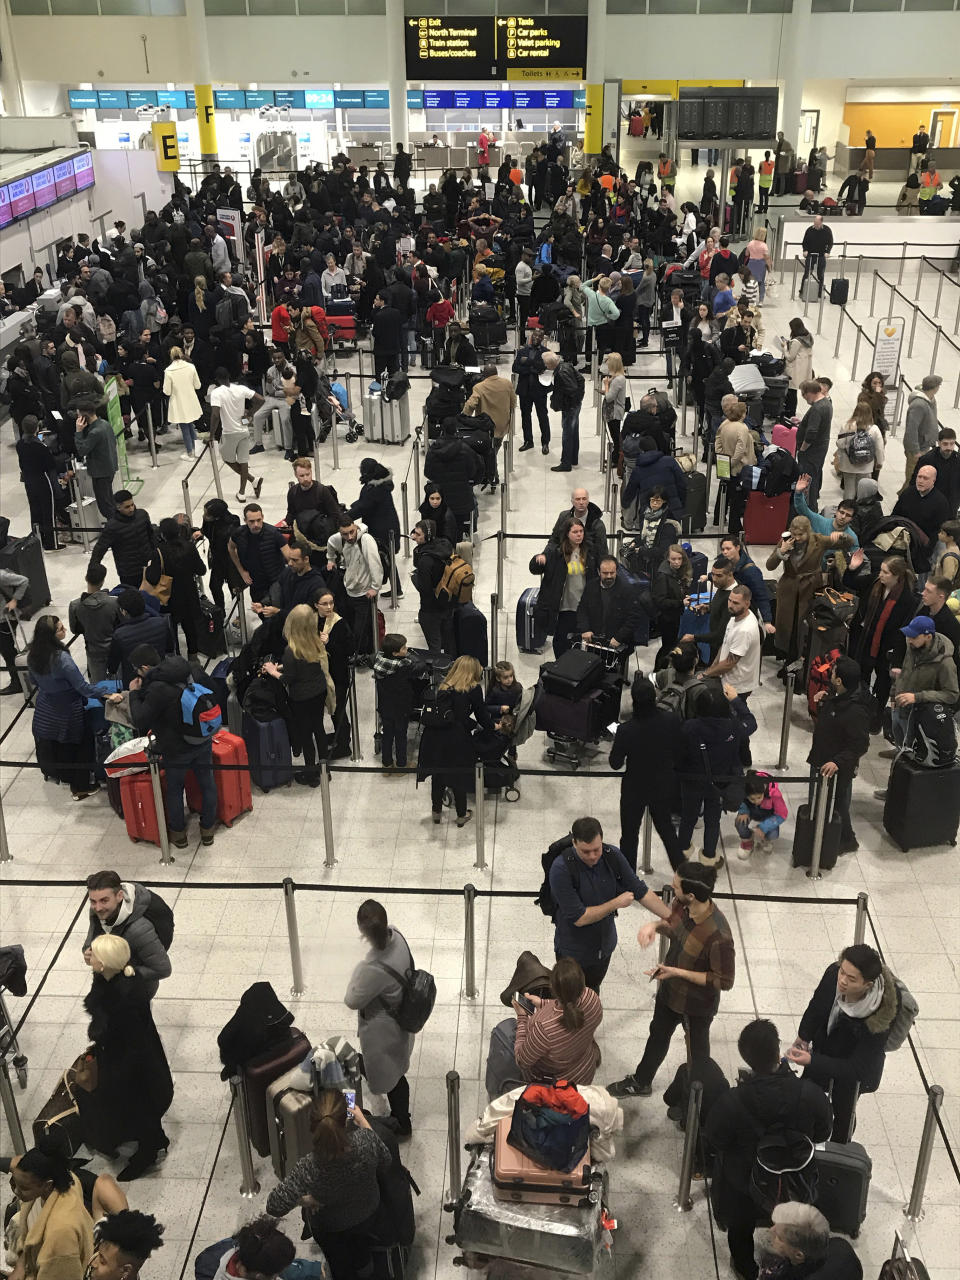 Passengers wait to check in at Gatwick Airport in England, Friday, Dec. 21, 2018. Flights resumed at London's Gatwick Airport on Friday morning after drones sparked the shutdown of the airfield for more than 24 hours, leaving tens of thousands of passengers stranded or delayed during the busy holiday season.(AP Photo/Kirsty Wigglesworth)